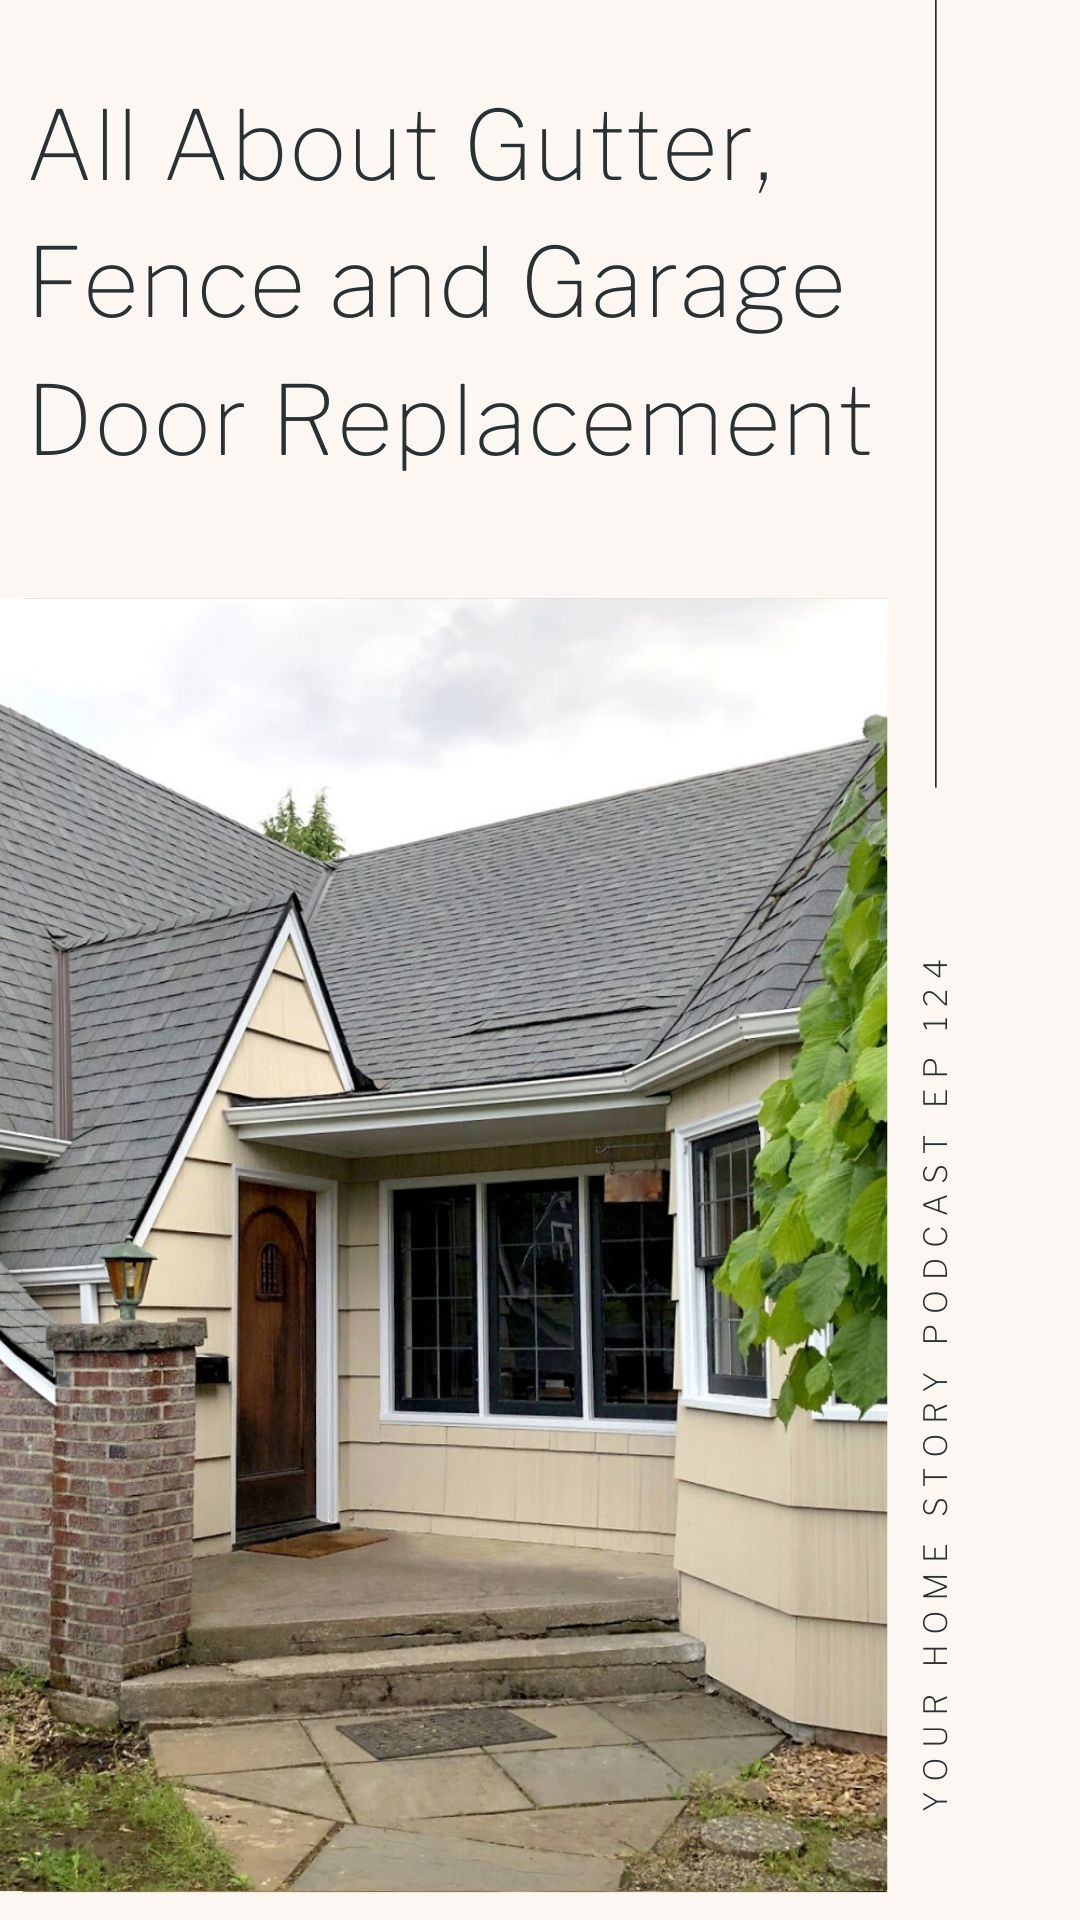 All About Gutter, Fence and Garage Door Replacement